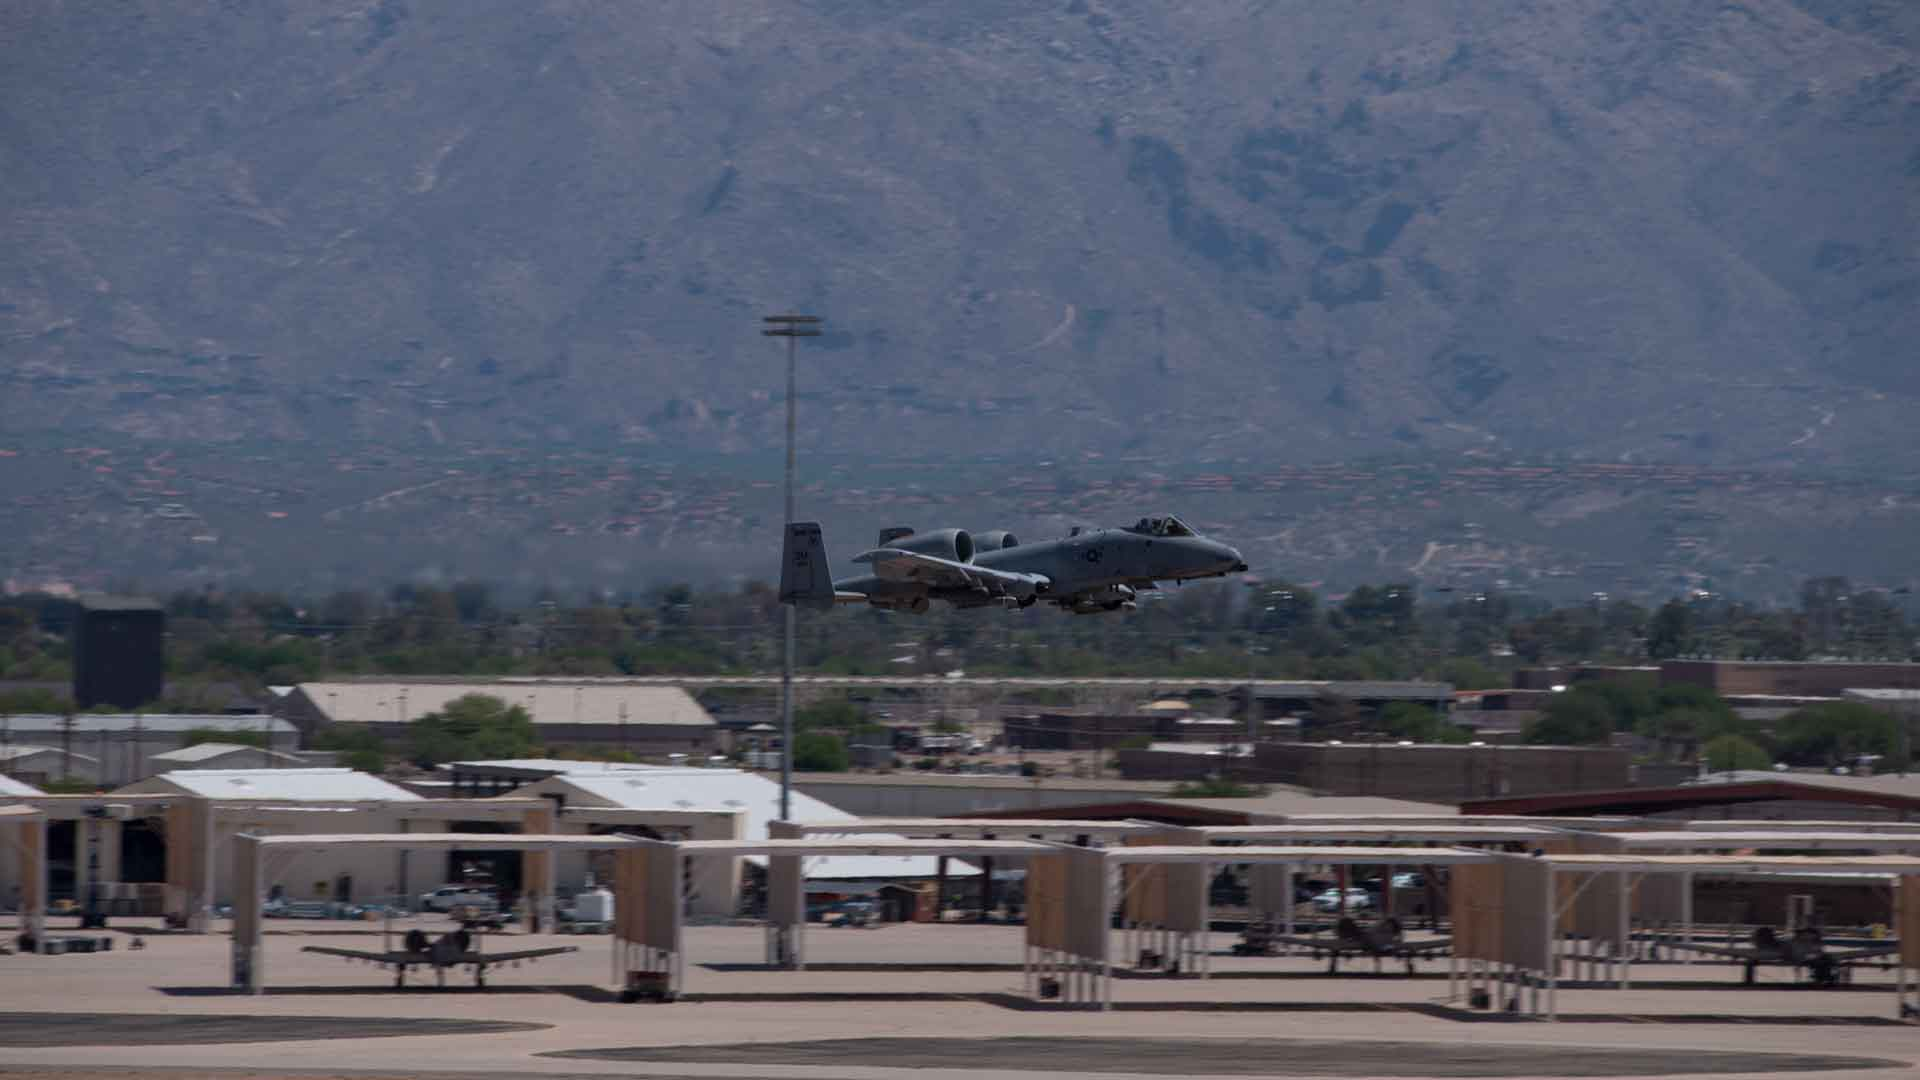 An A-10 makes a pass over the runway at Tucson's Davis-Monthan Air Force Base.  July 2021.